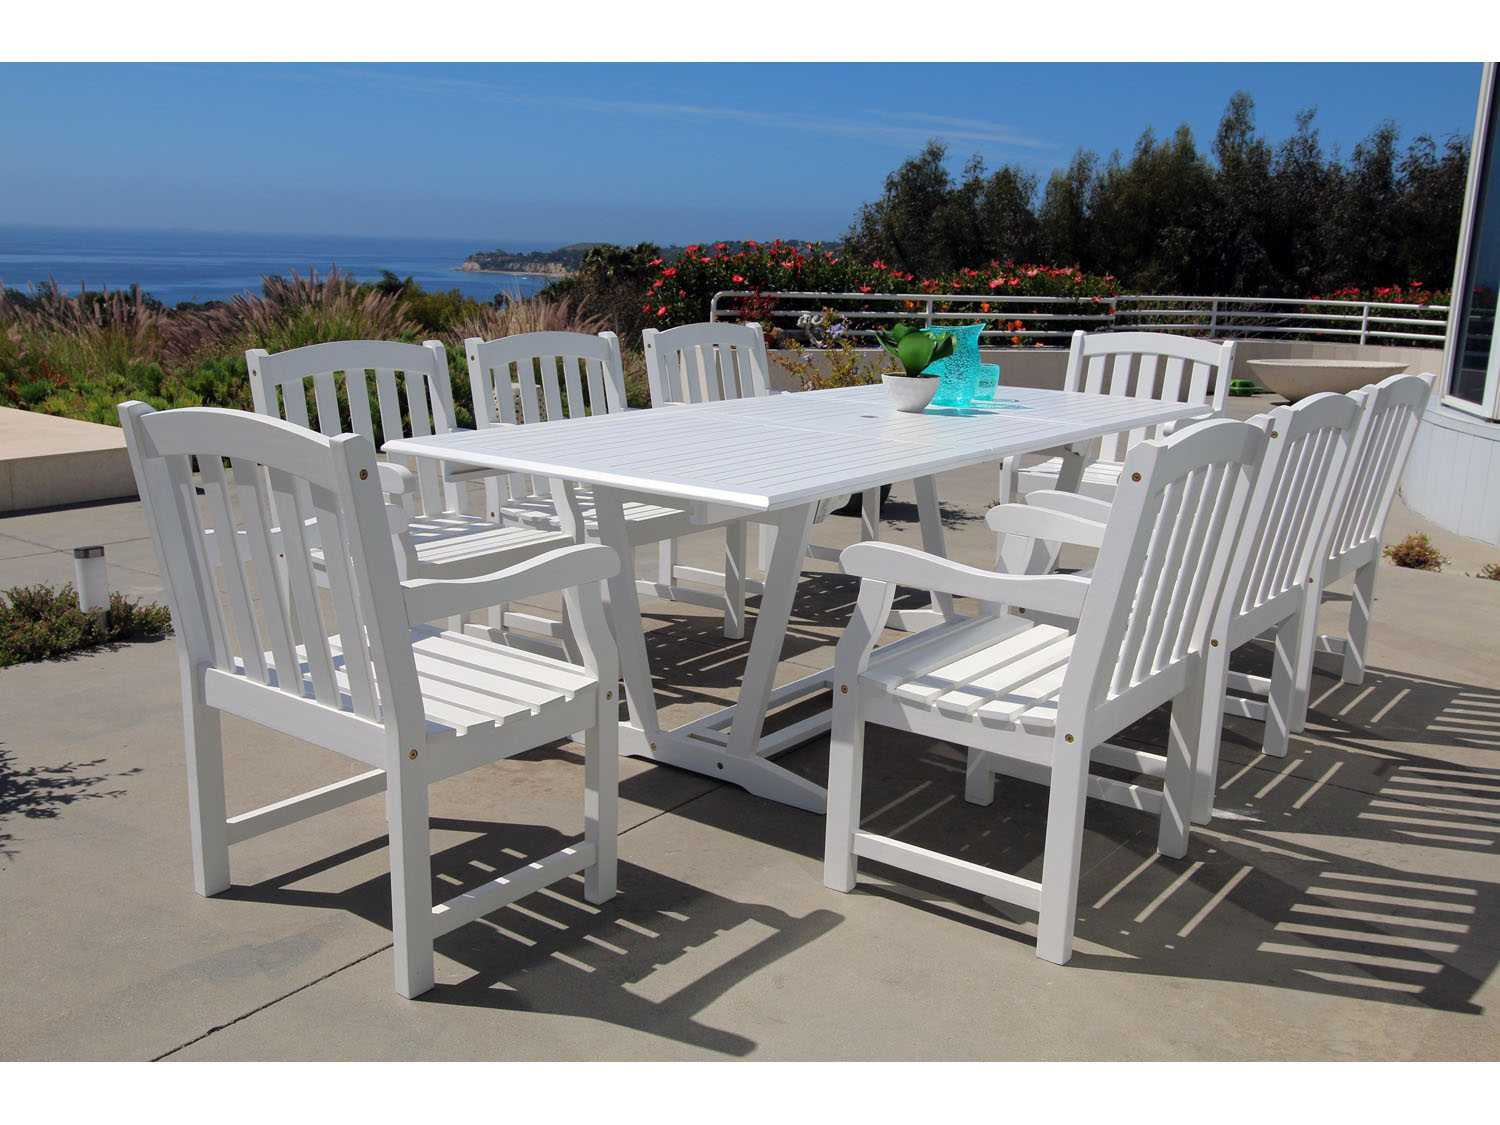 Vifah Bradley Eco Friendly 9 Piece Outdoor White Hardwood